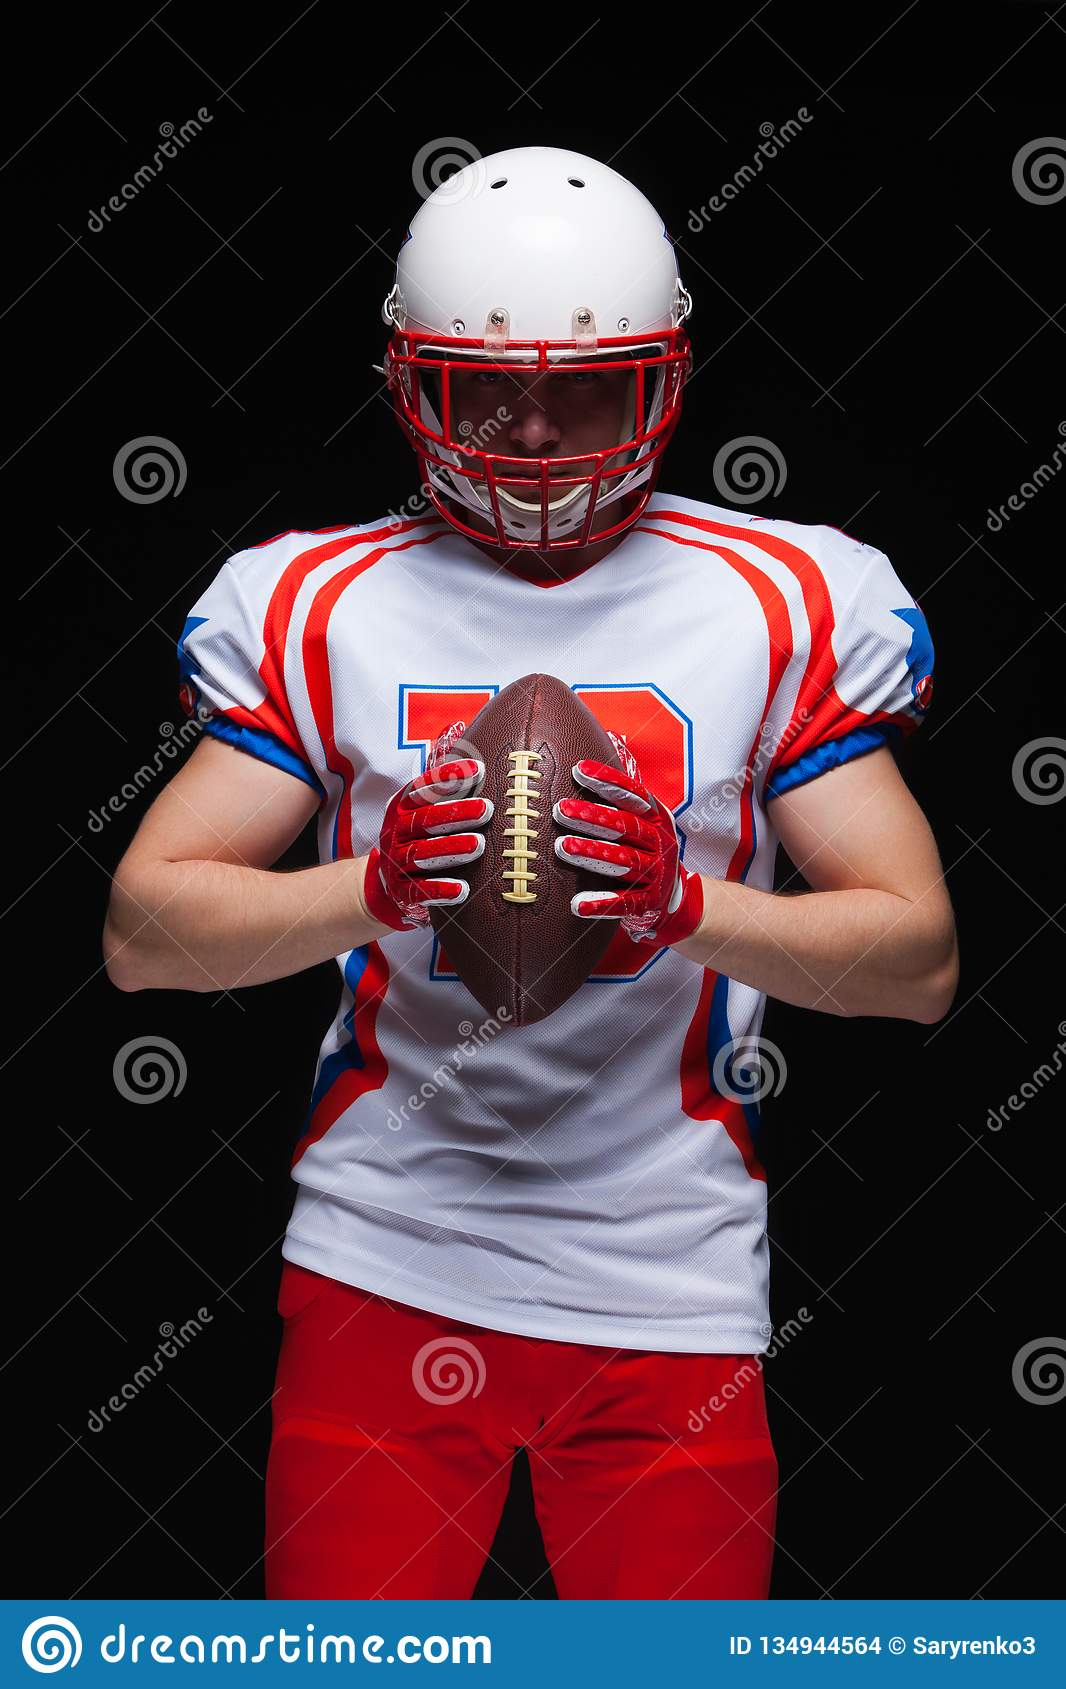 American football player wearing helmet holding ball in front of him on black background